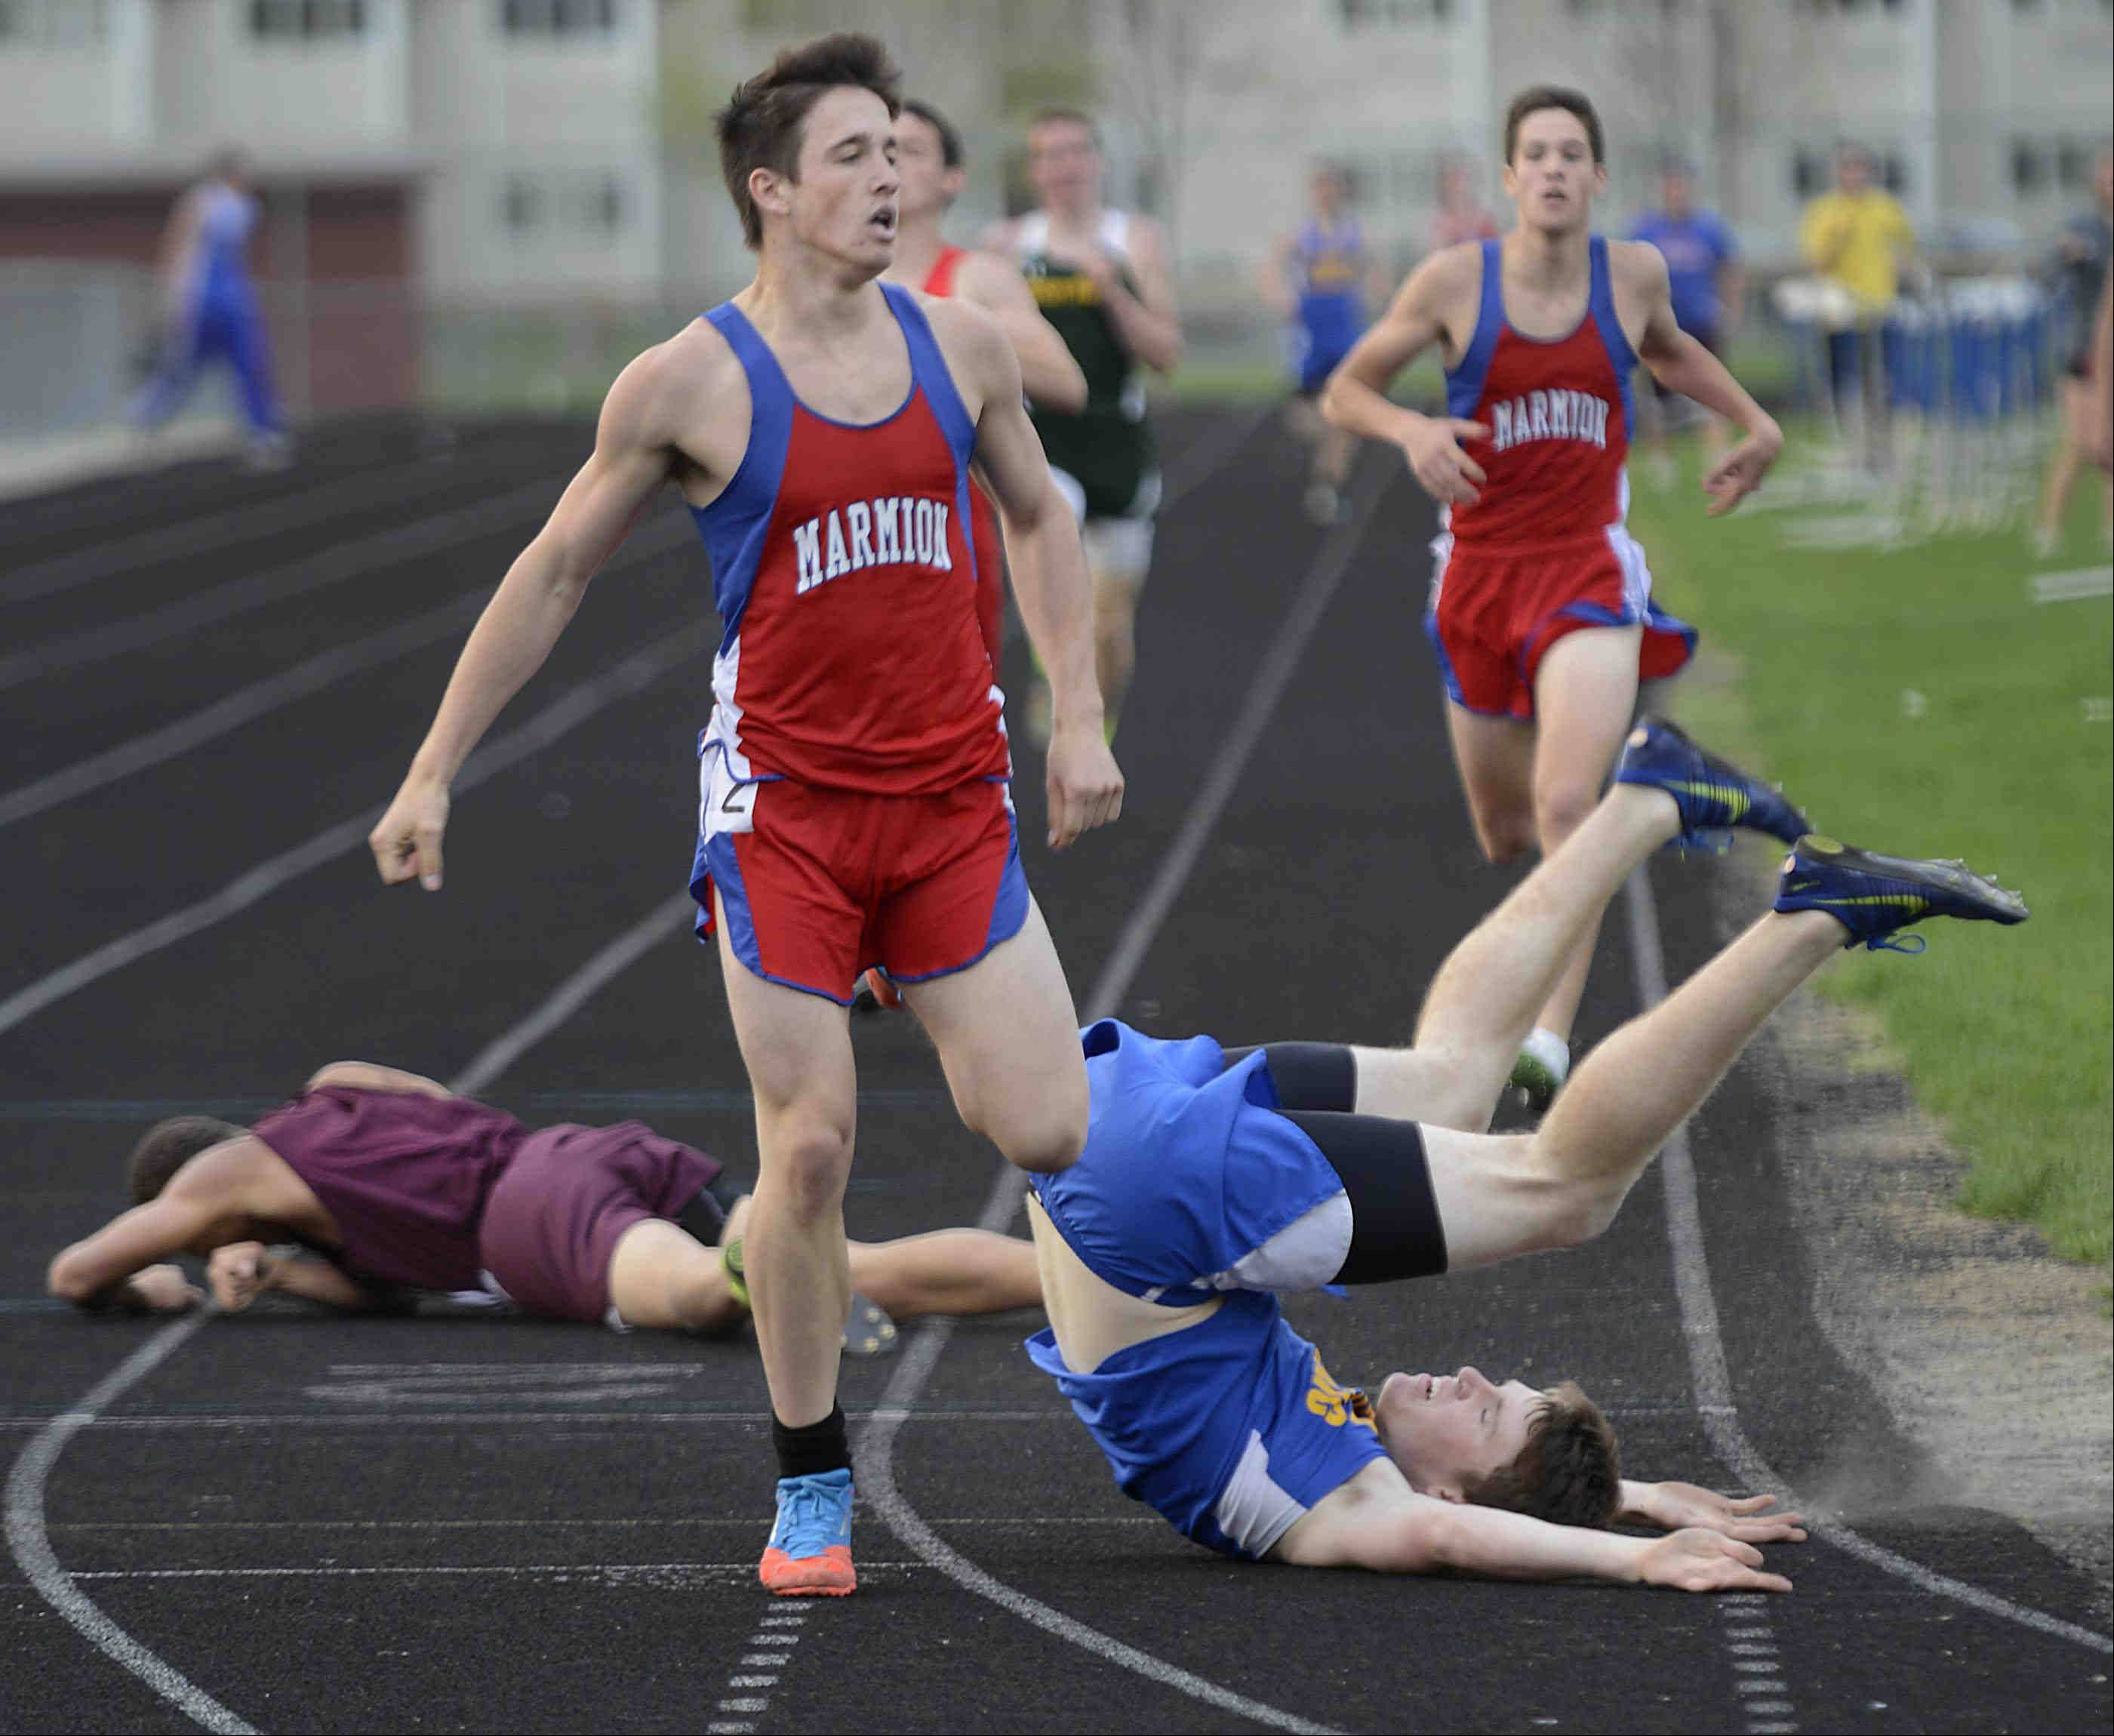 Aurora Central Catholic's Matt Meyers rolls on his shoulders after falling across the finish line in the 800-meter run Wednesday at the Suburban Christian Conference boys track meet at Aurora Central Catholic.